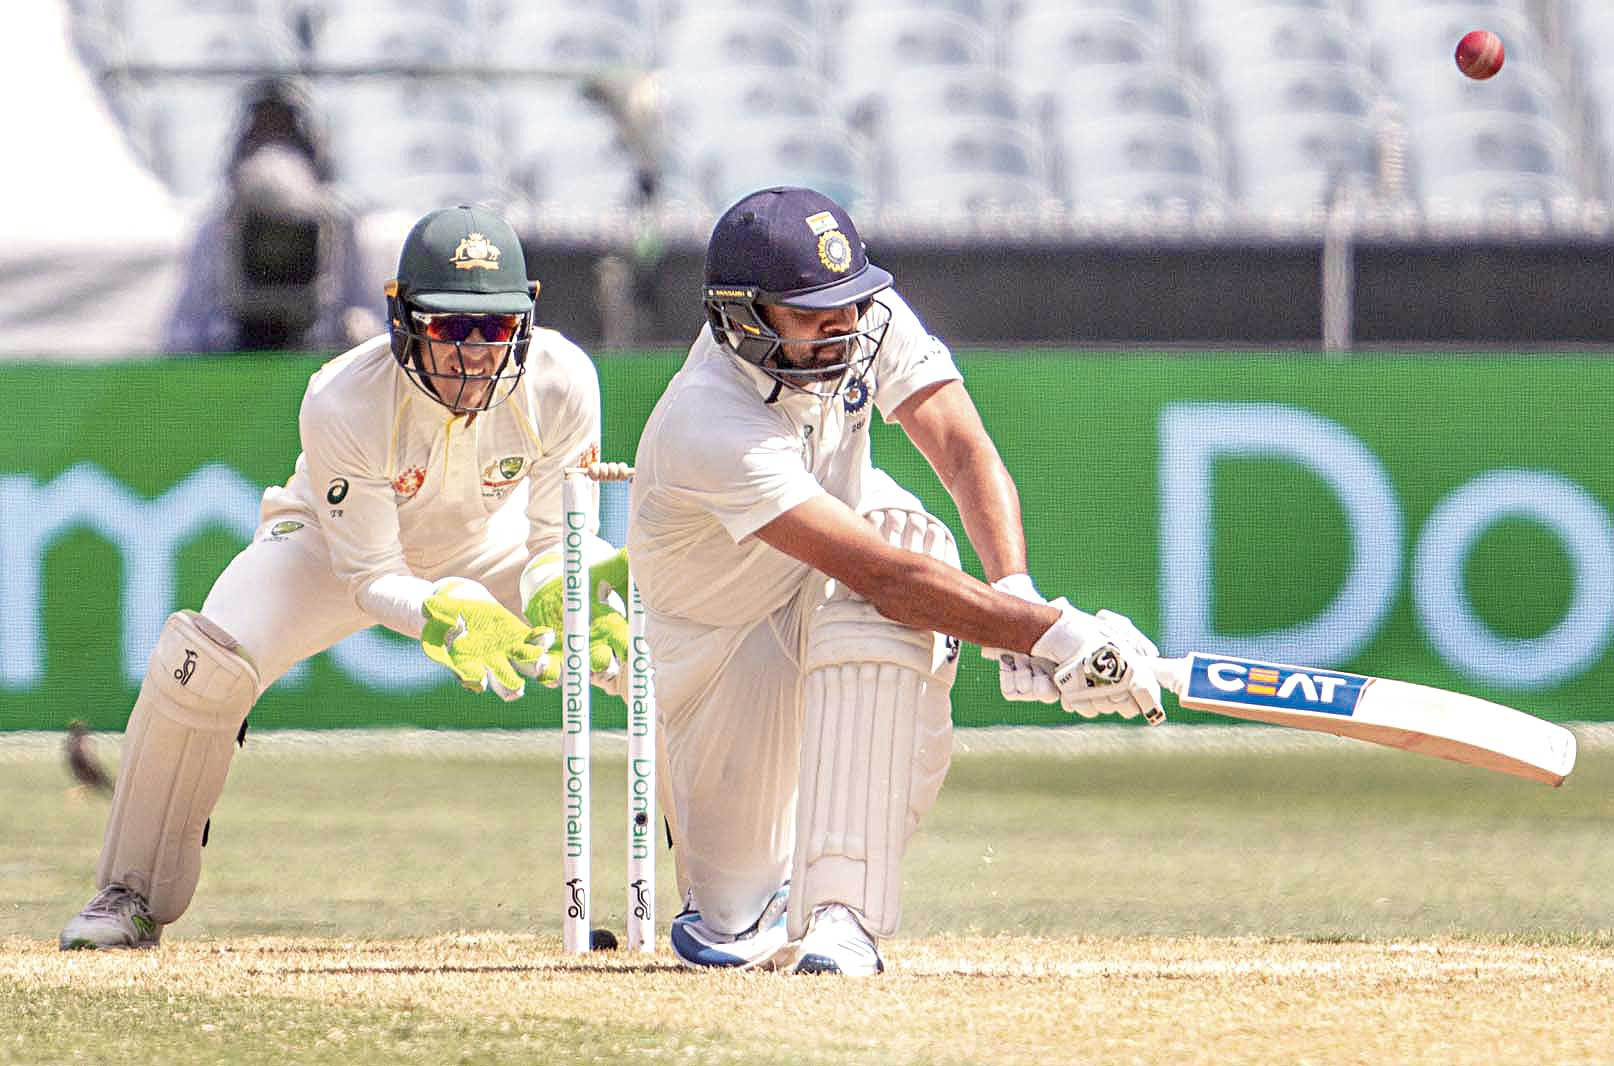 Rohit Sharma plays a shot during the third India-Australia Test in Melbourne on Thursday. Most fans would have missed the action from December 29 had the cable deadline not been revised.